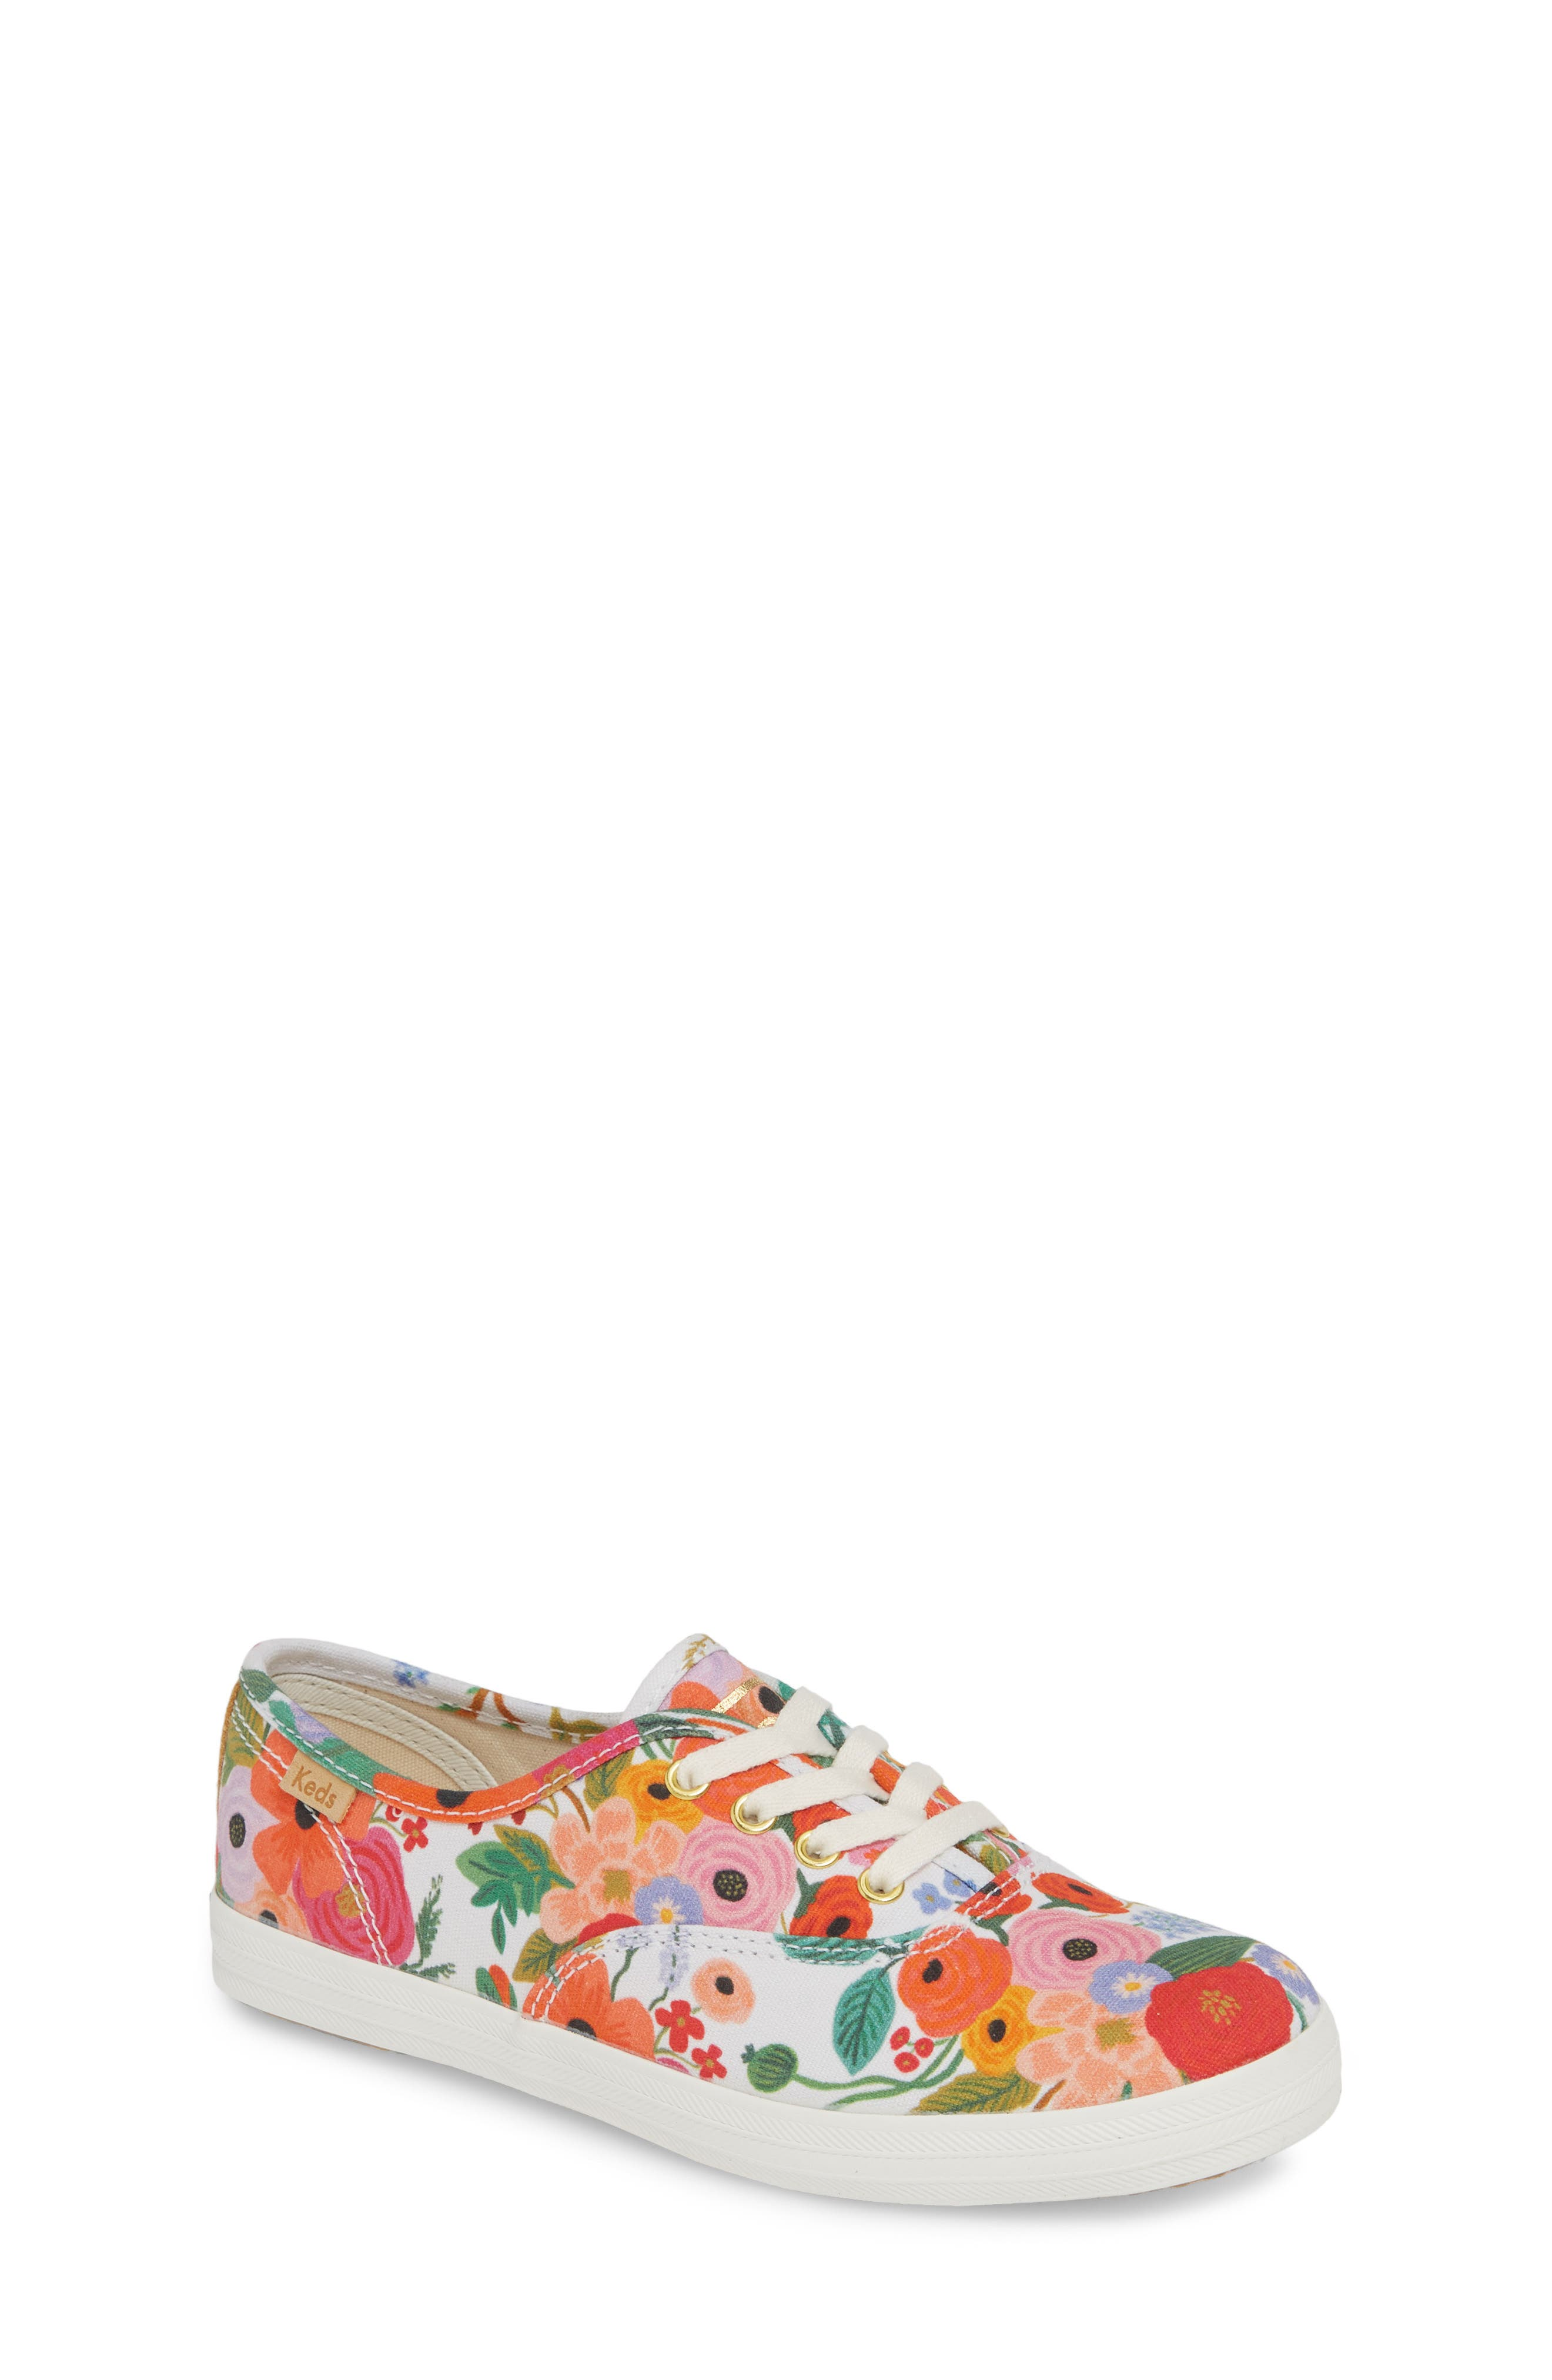 KEDS<SUP>®</SUP> x Rifle Paper Co. Floral Print Champion Sneaker, Main, color, GARDEN PARTY